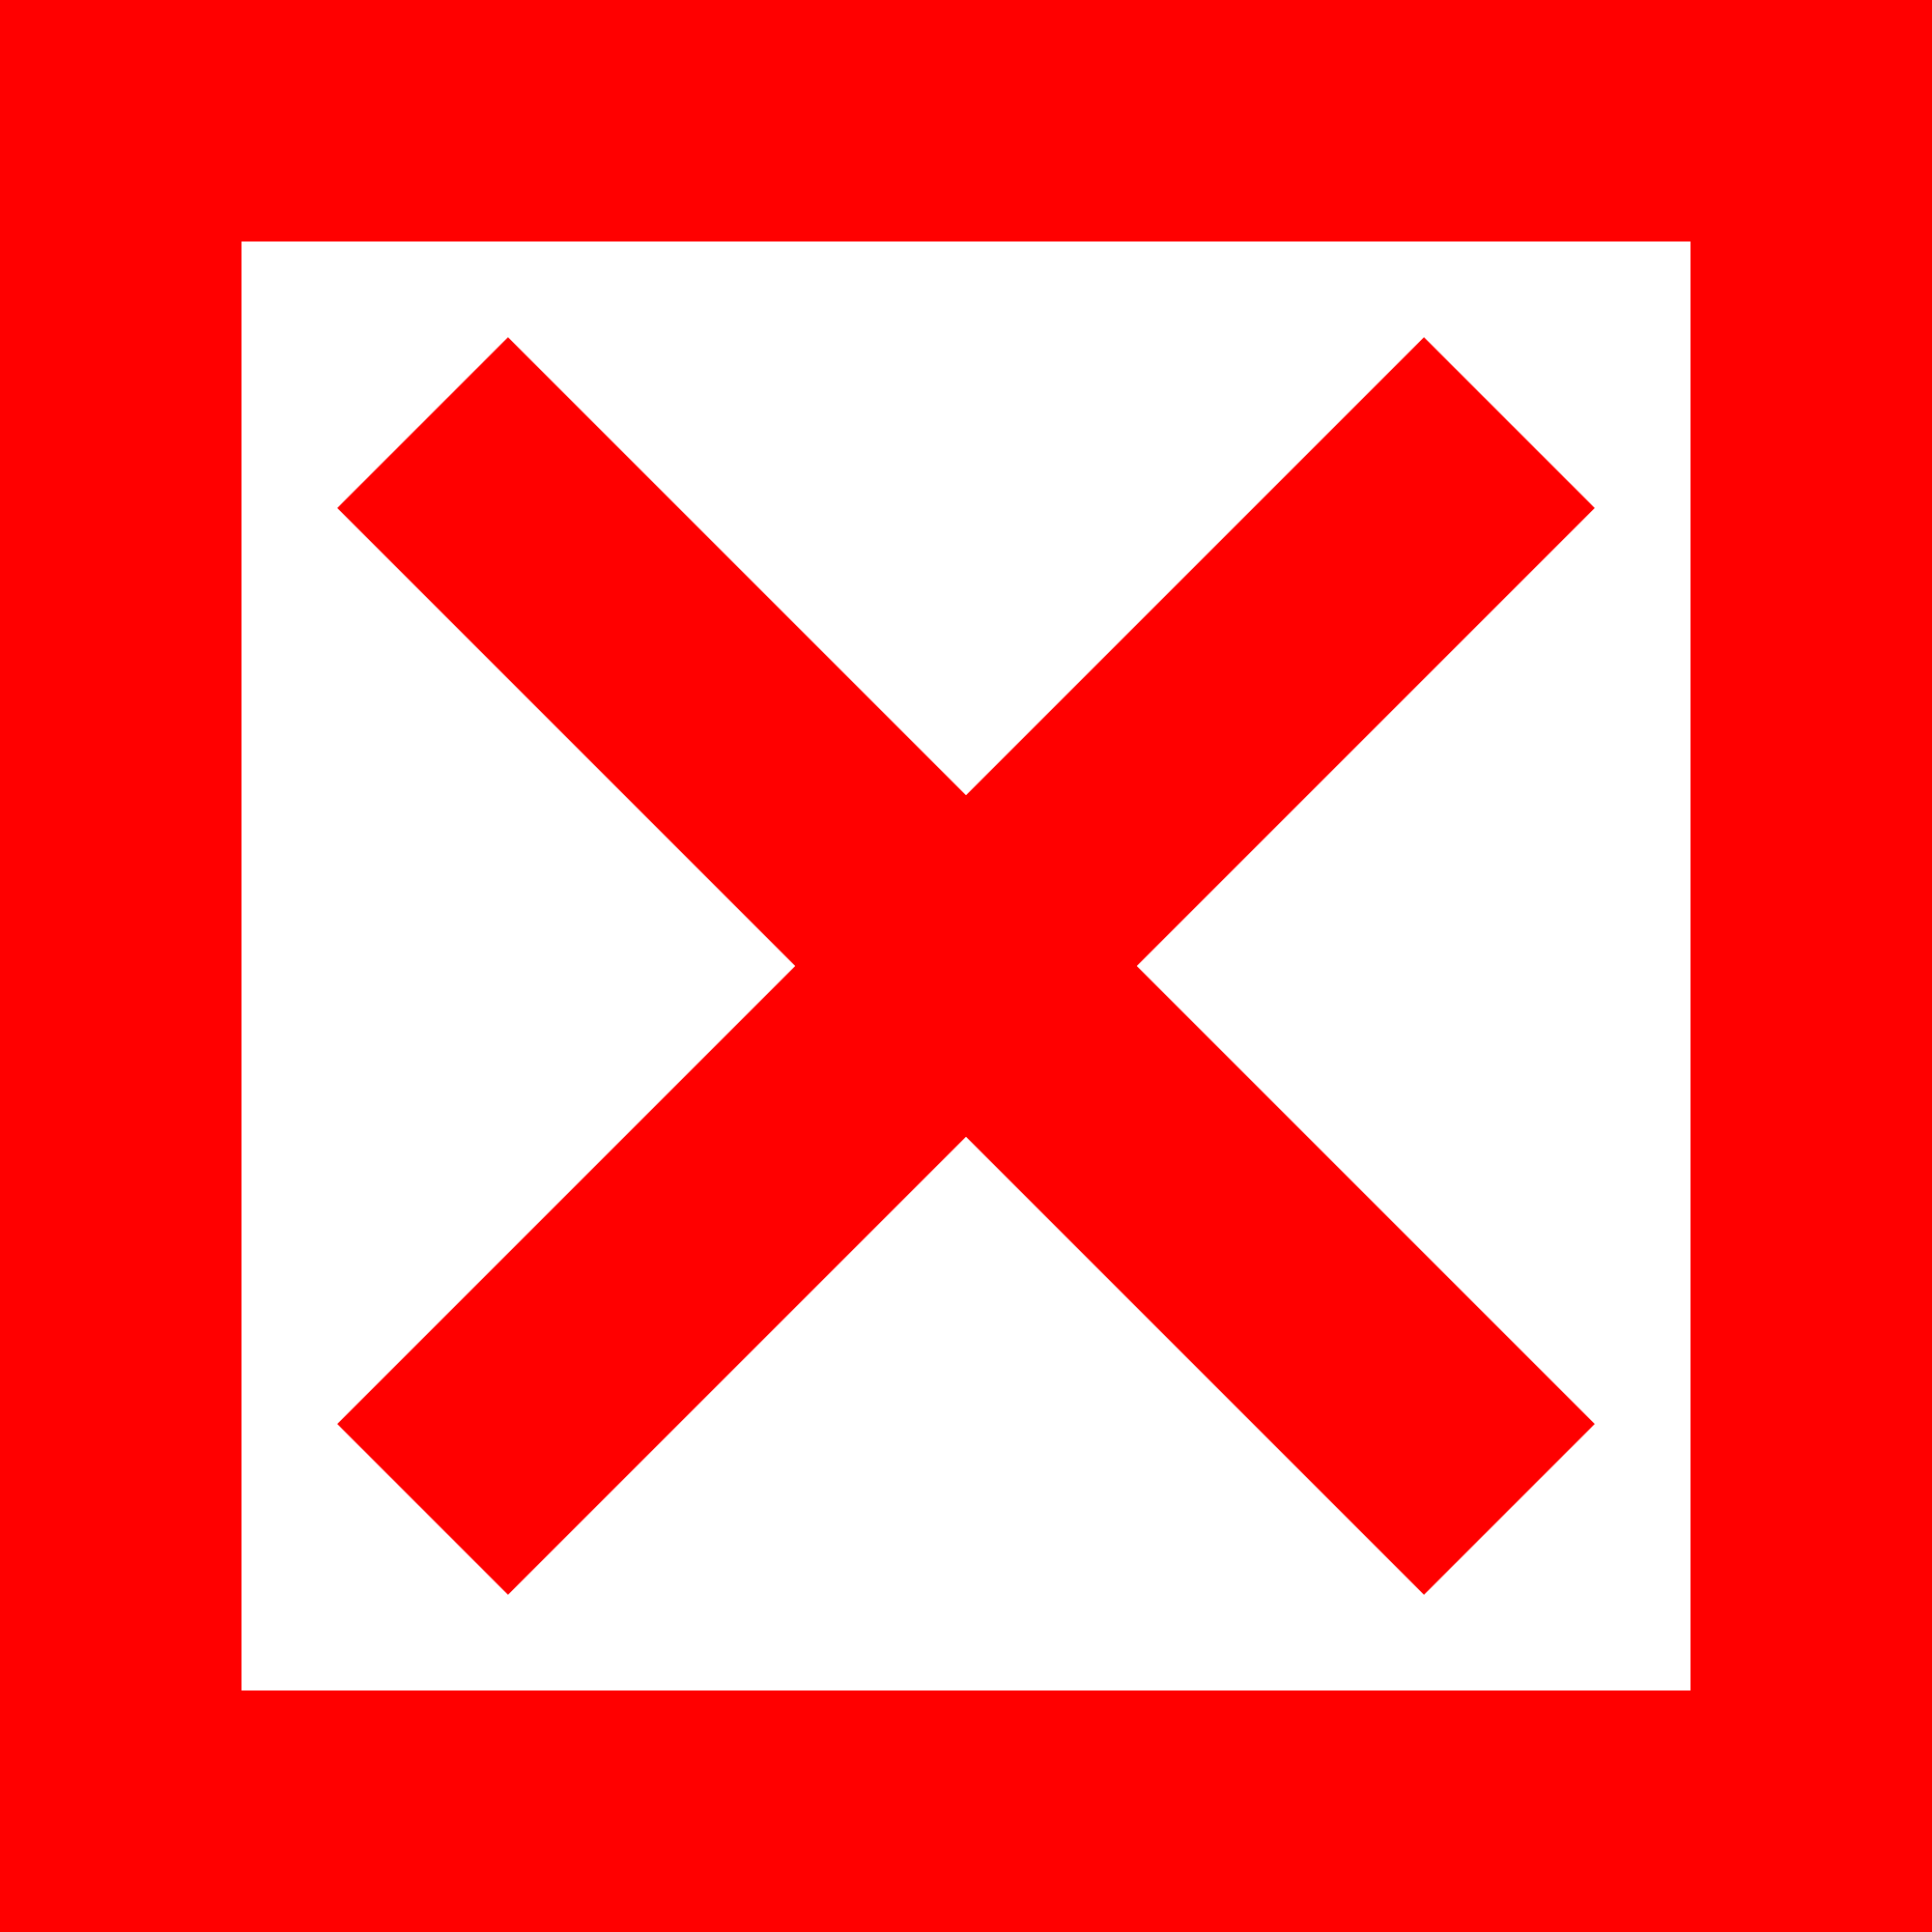 No! png symbol. File icon no svg